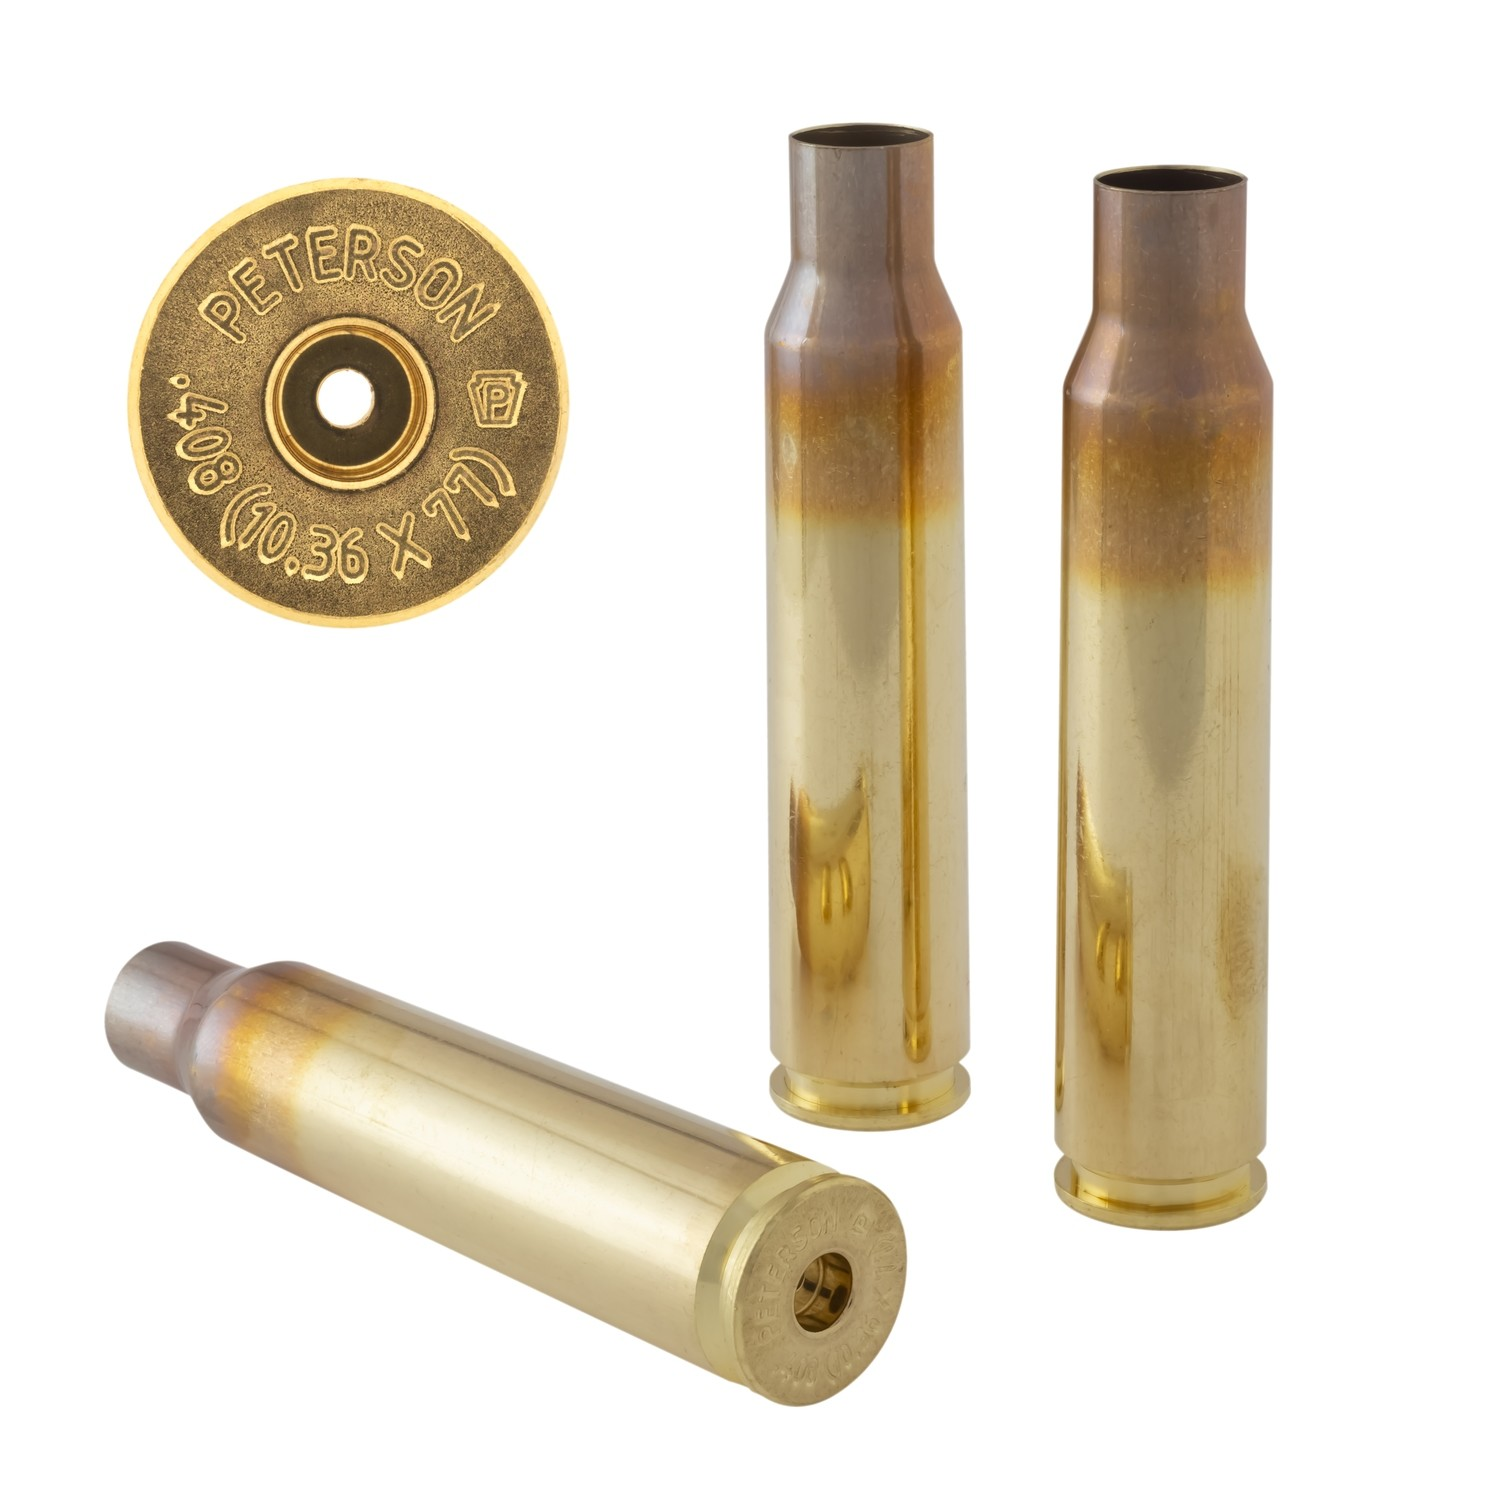 Peterson 10.36 x 77 (.408 CheyTac®) Select - Box of 50 Brass Rifle Casings